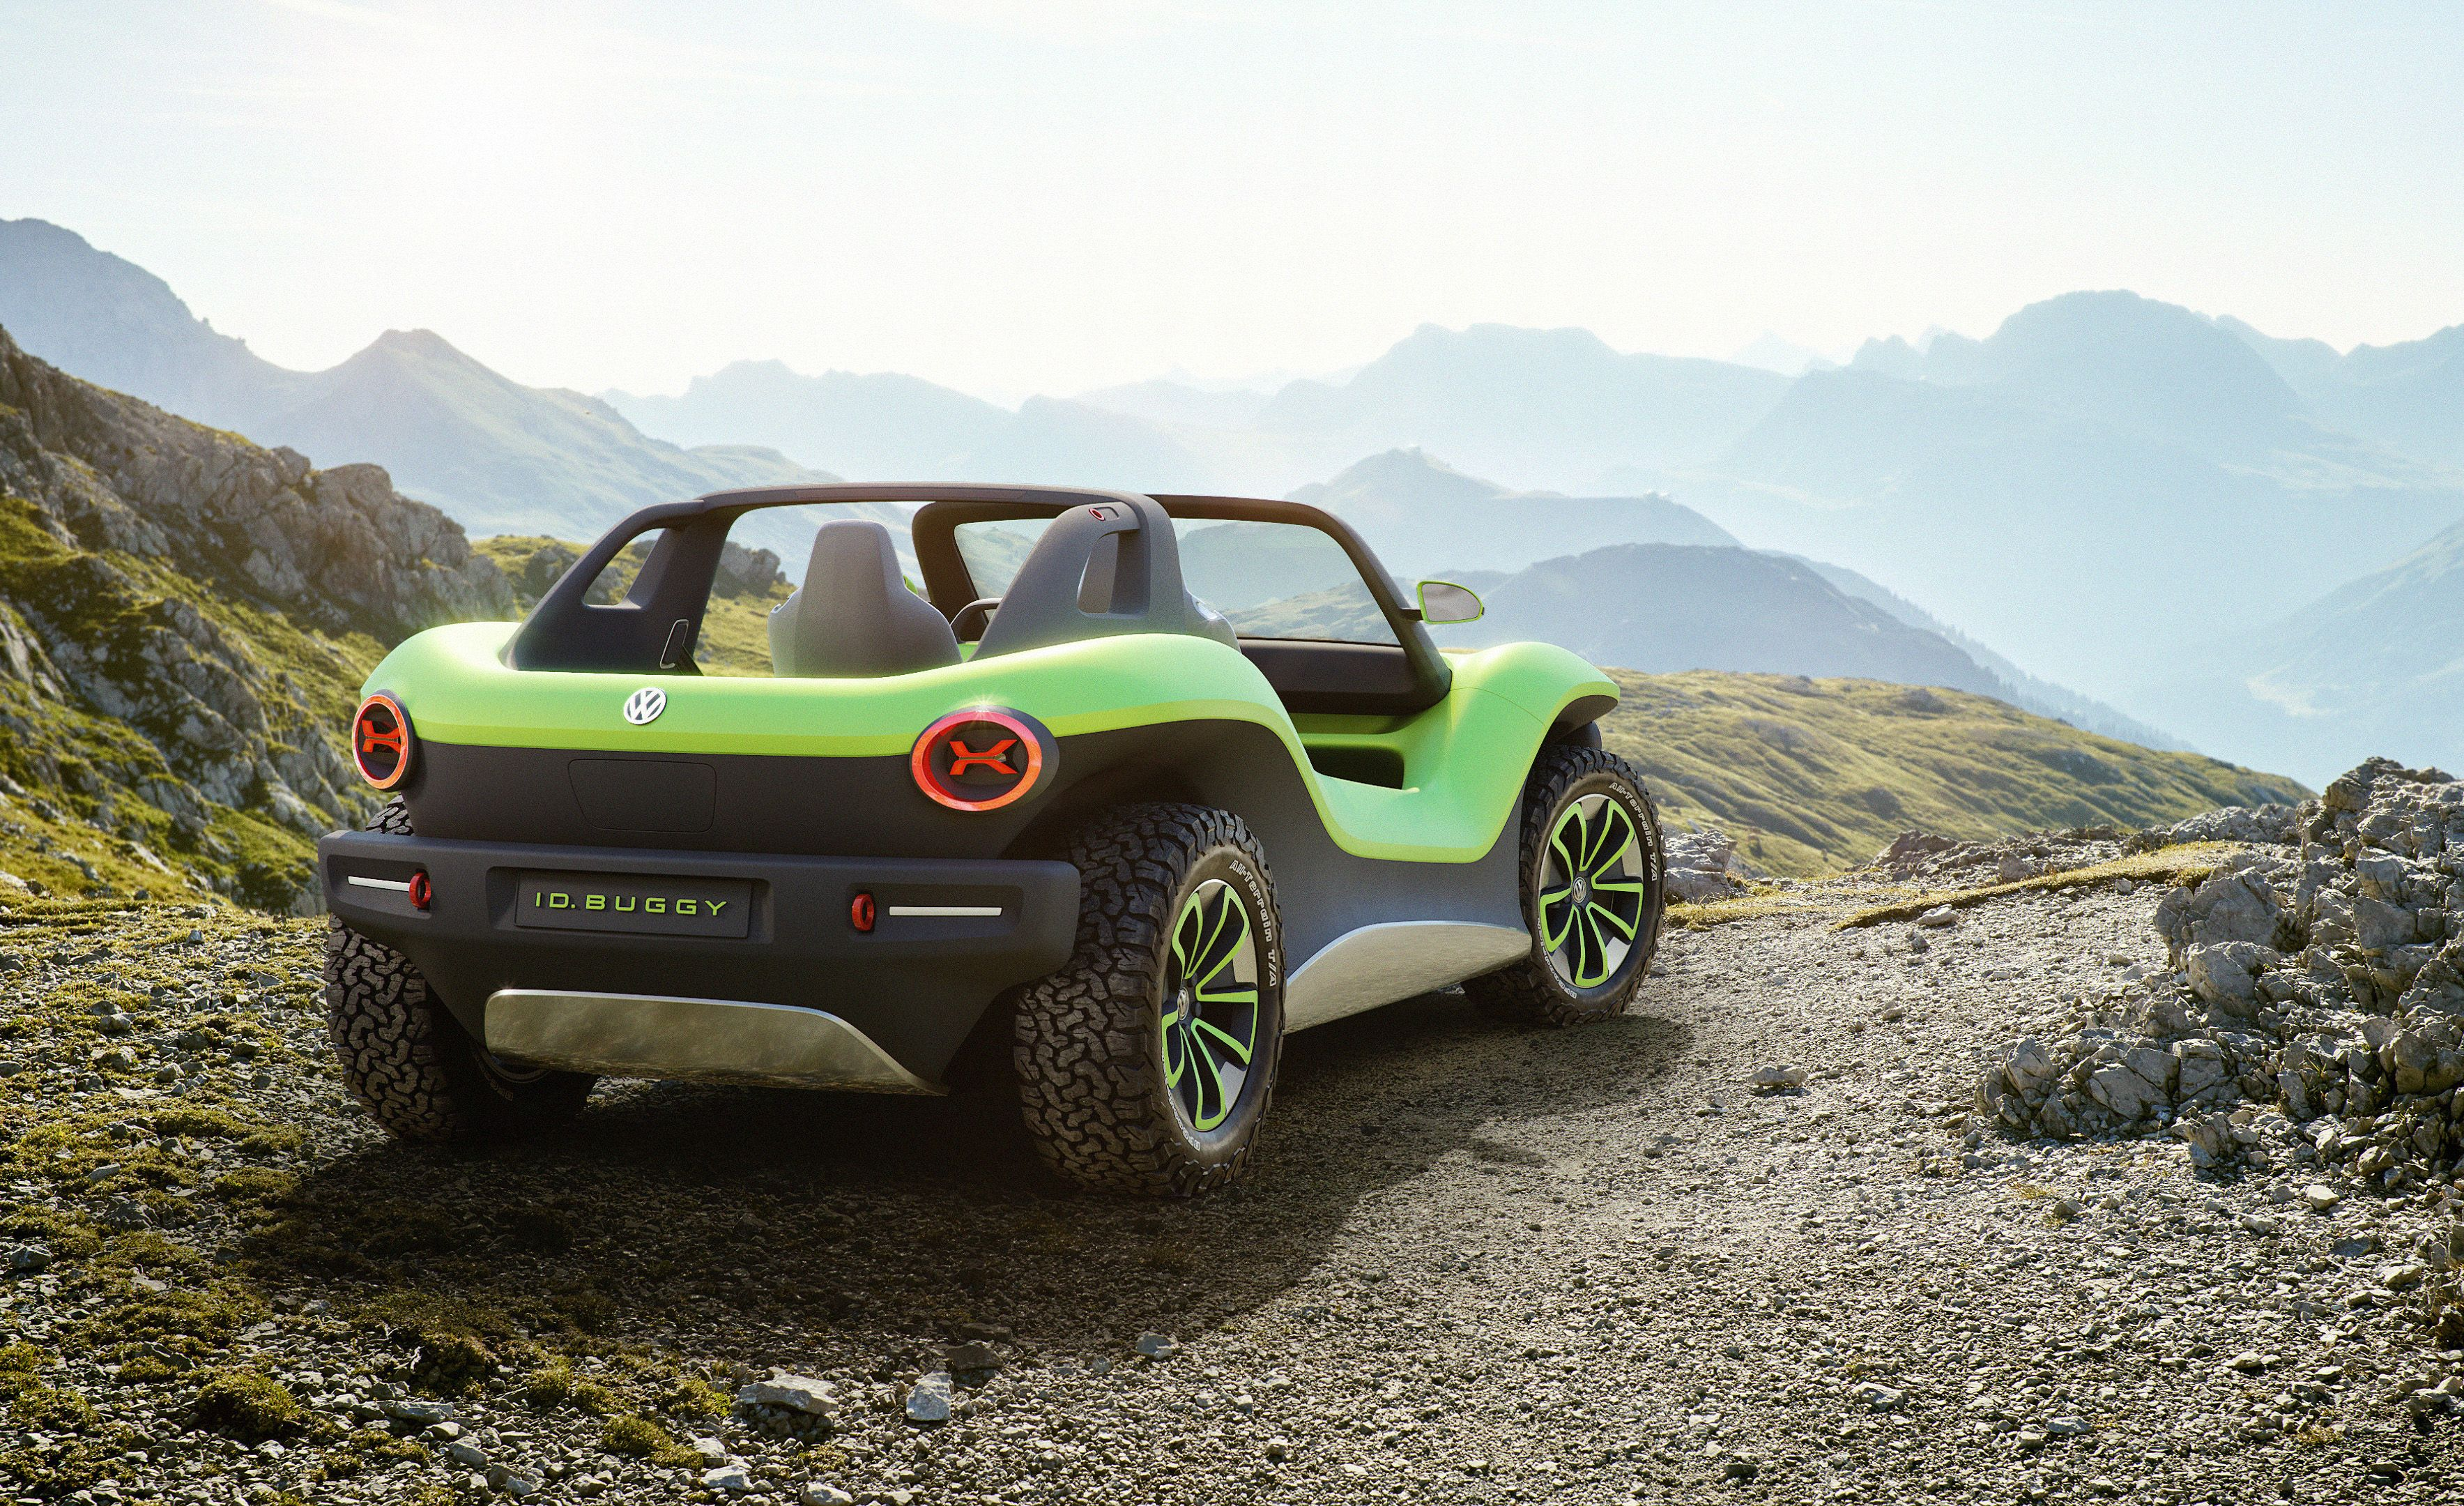 Volkswagen I D  Buggy – All-Electric Dune Buggy Concept